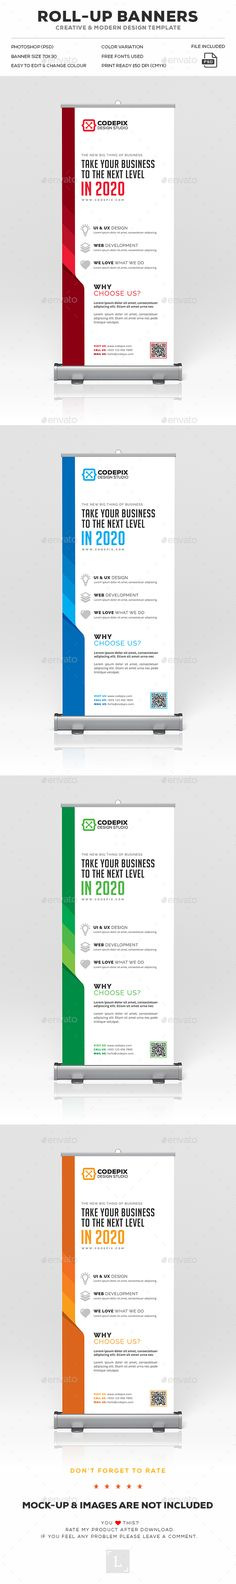 Roll-Up Banner - Signage Print Templates Rollup Banner, Signage Design, Banner Design, Banner Template, Flyer Template, Trade Show Design, Business Poster, Creative Brochure, Event Banner